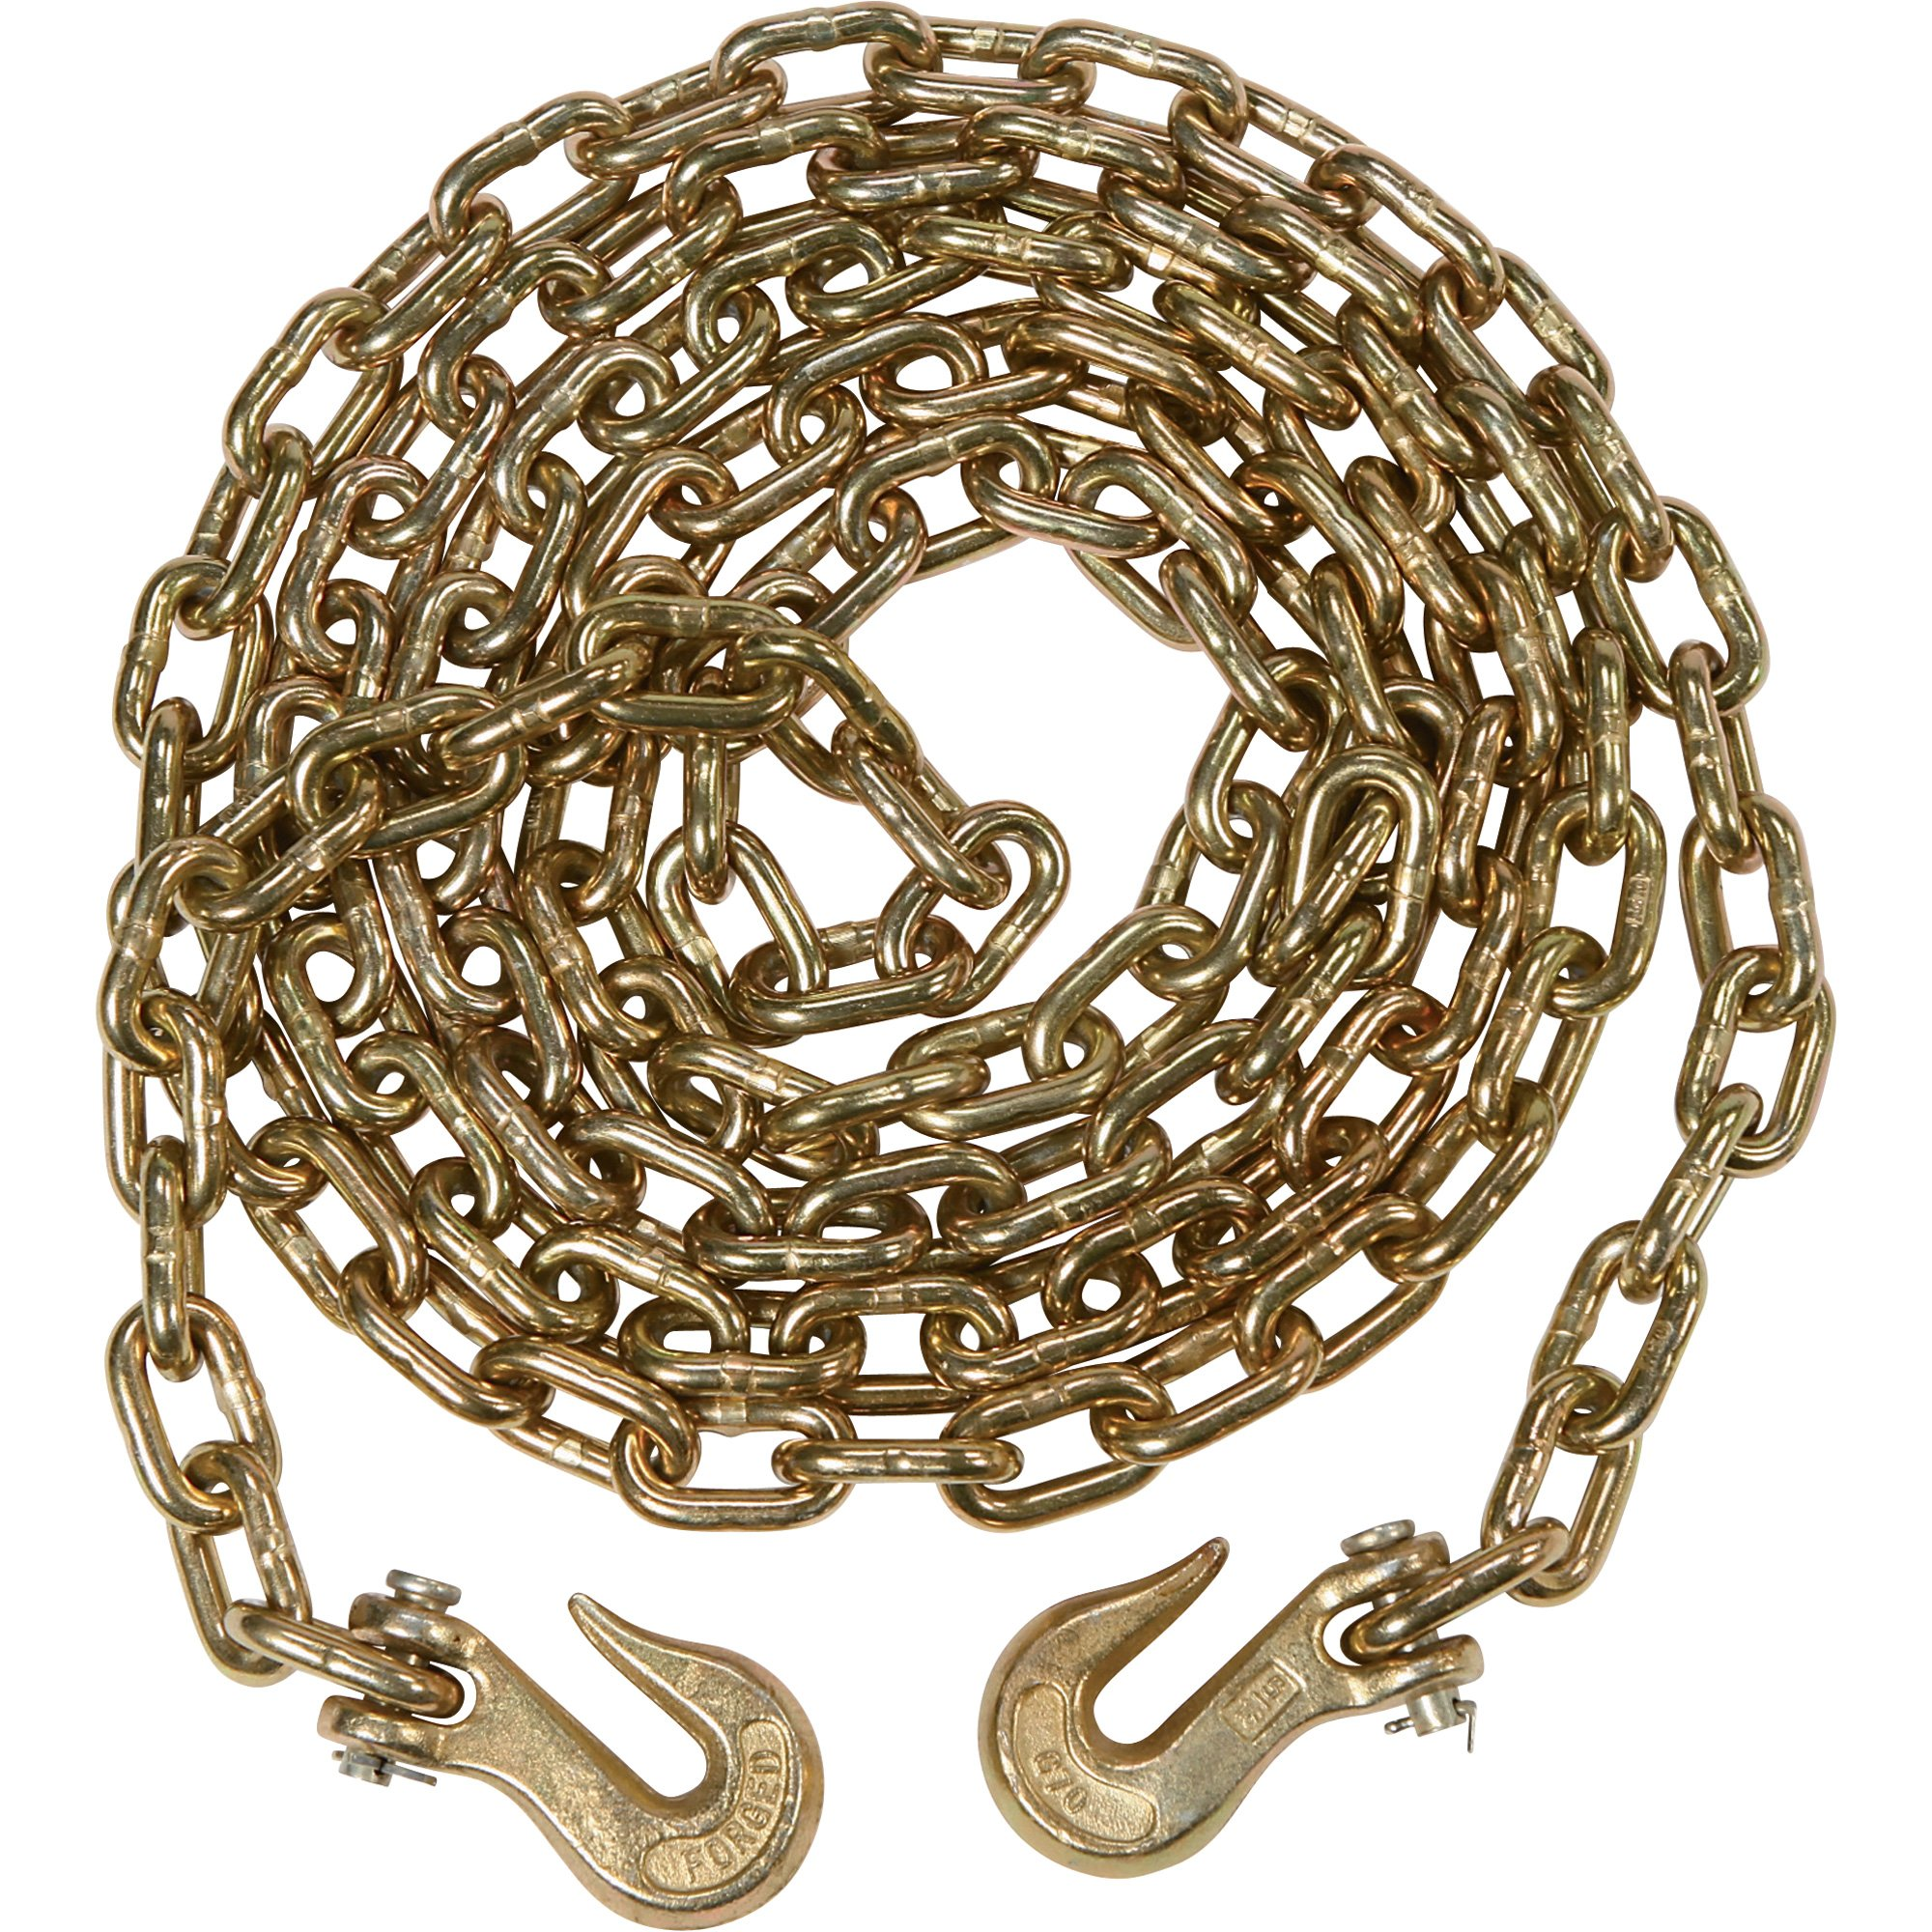 4 pack 5/16'' x 20' G70 Tow Chain Binder Tie Down Flatbed Truck Trailer Chain by GPD